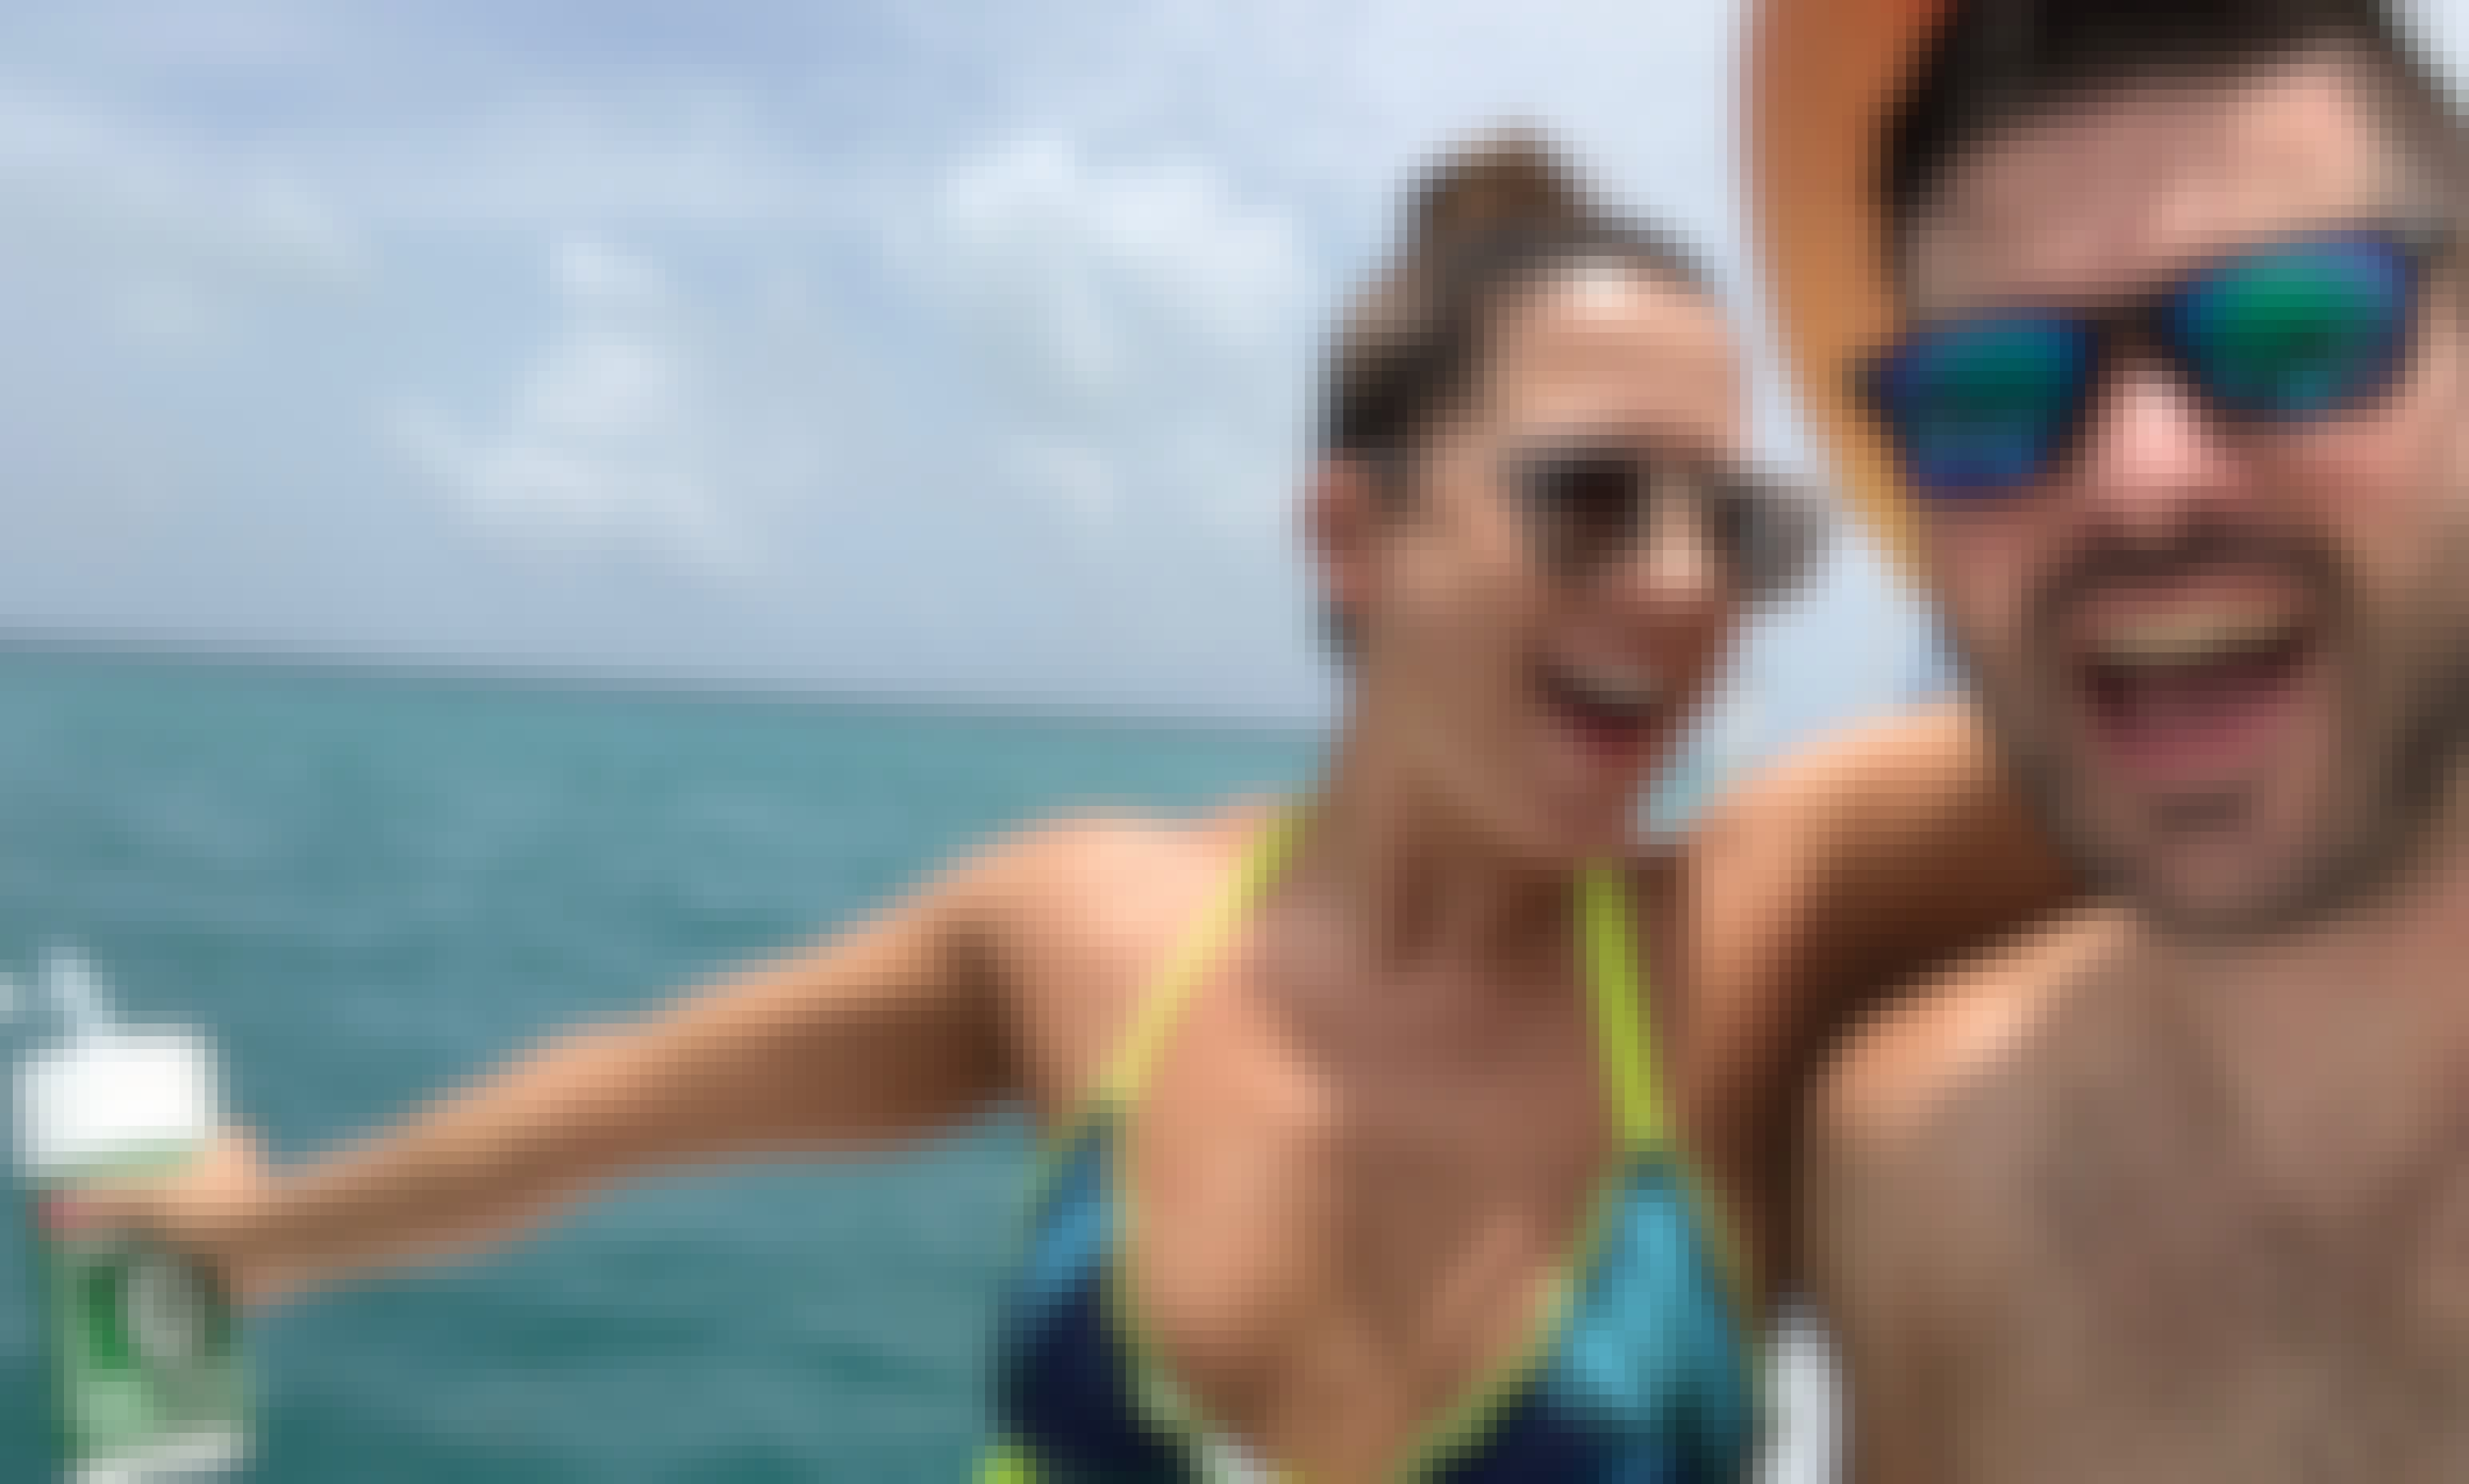 Sunset Booze Cruise Key West Private Charter on 24' Hurricane **3:30 PM, 3 hours**